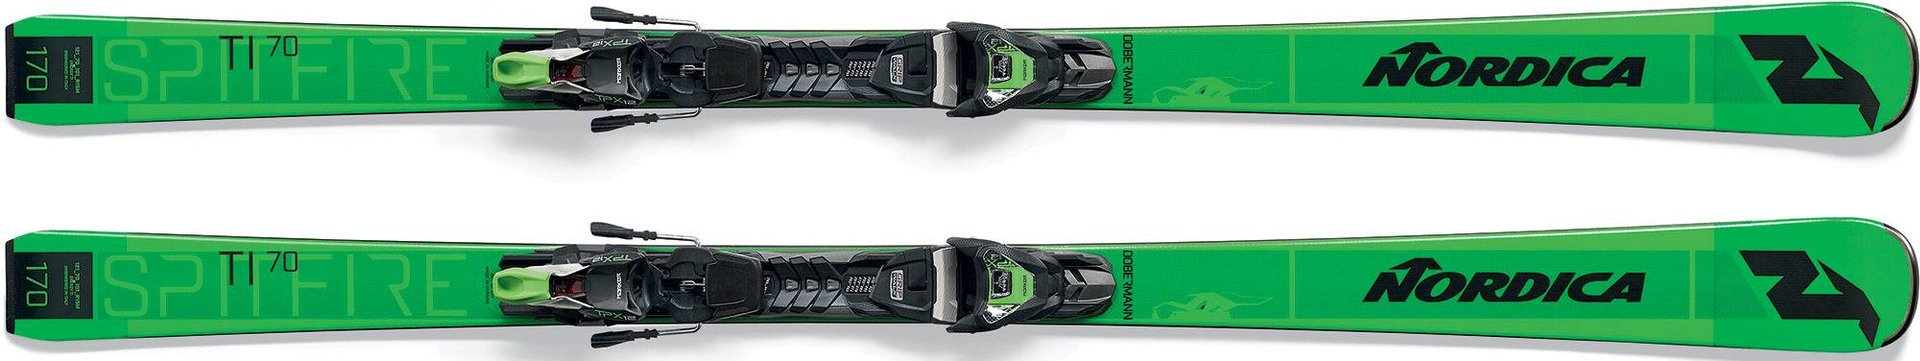 NORDICA SPITFIRE RB TI GREEN